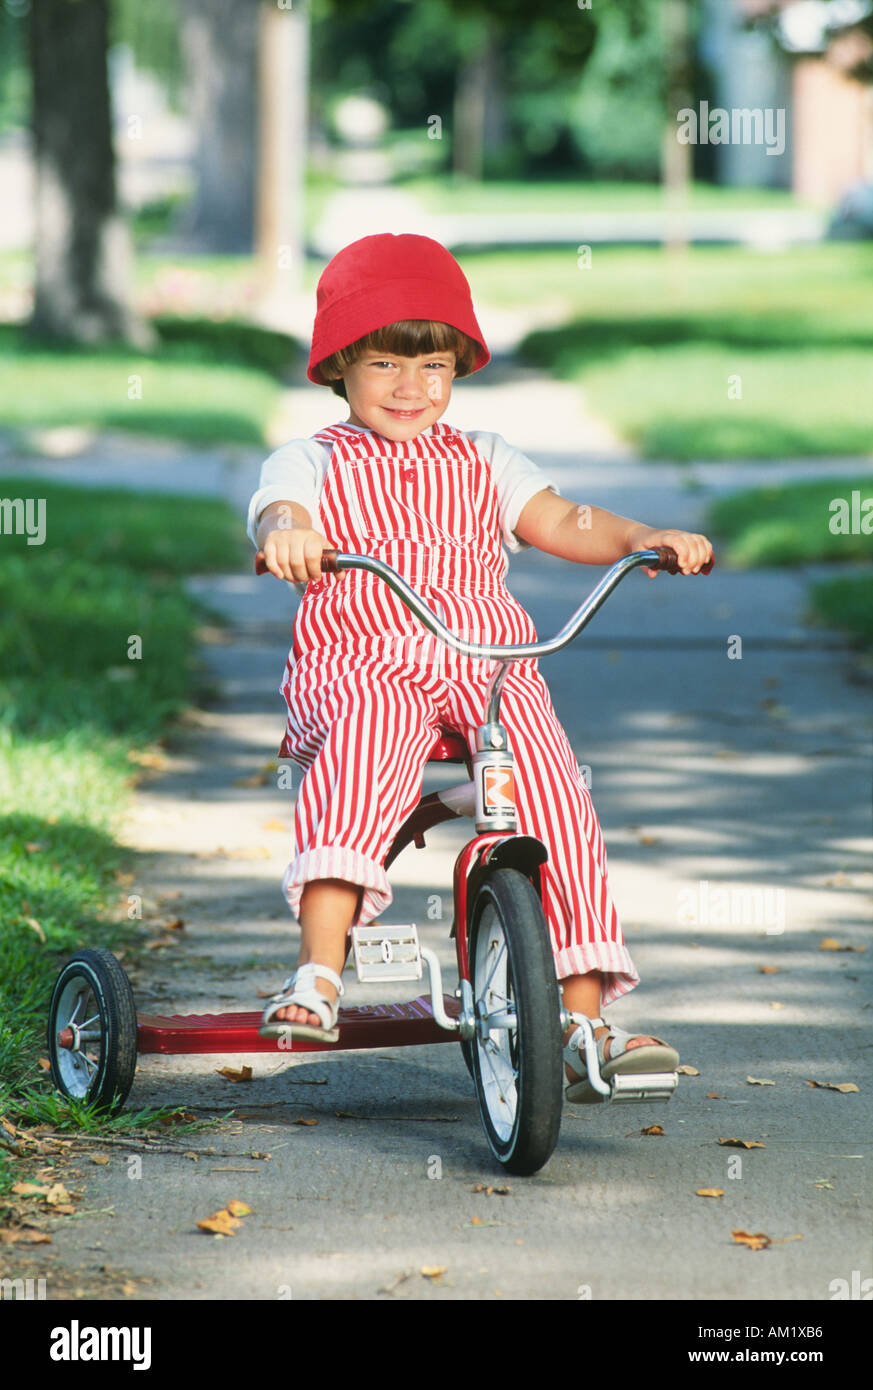 Young girl wearing red hat and striped overalls riding tricycle - Stock Image